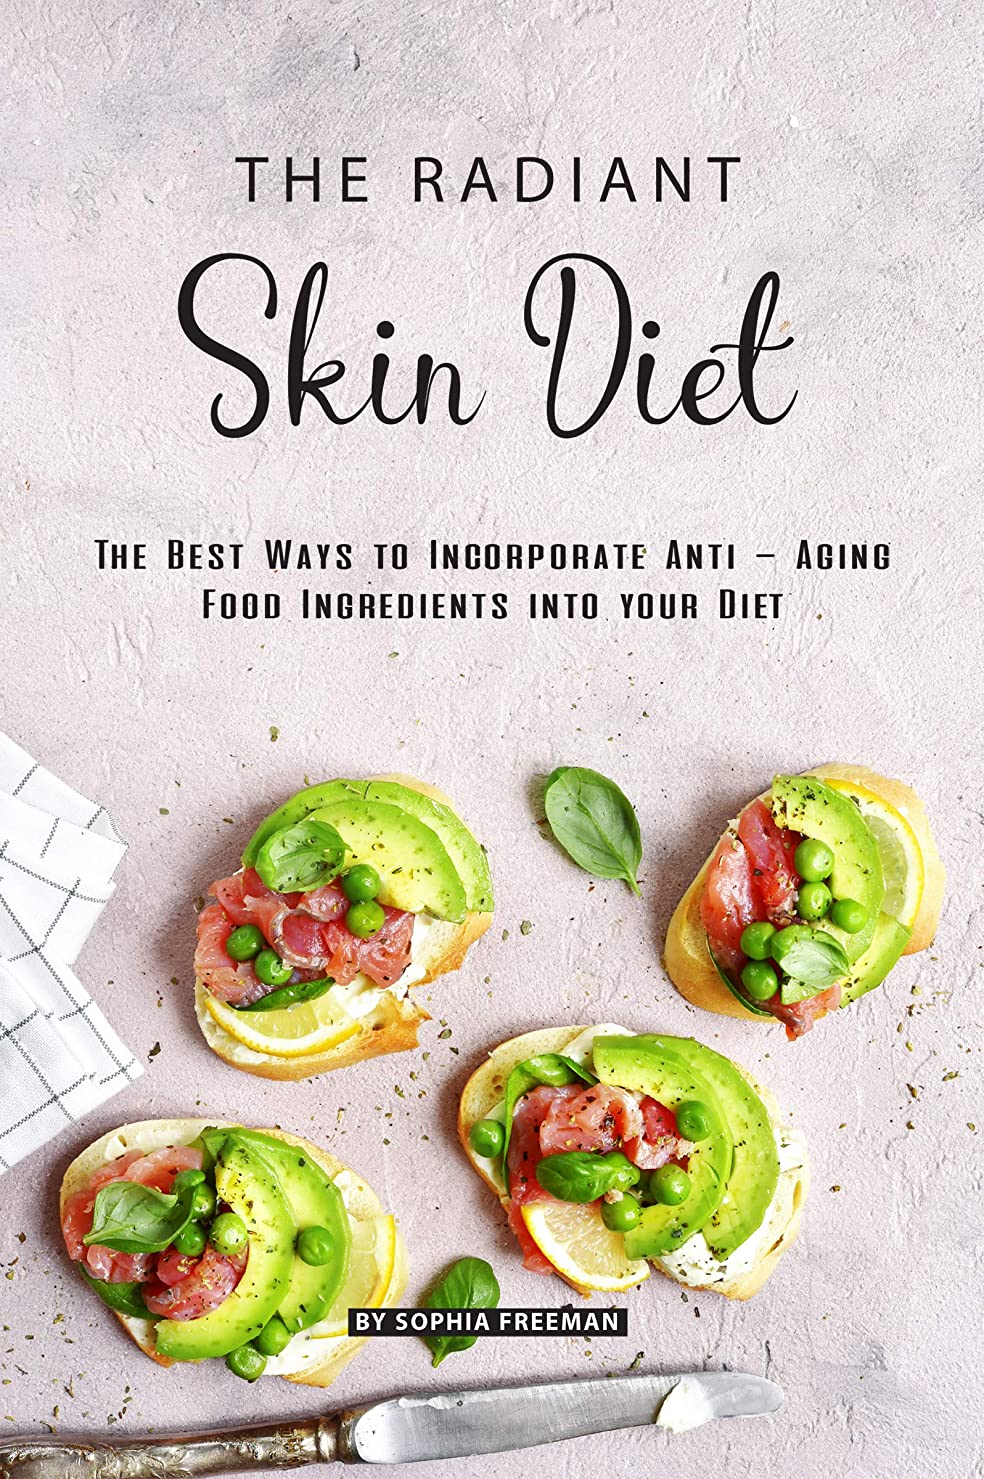 The Radiant Skin Diet: The Best Ways to Incorporate Anti - Aging Food Ingredients into your Diet (English Edition)